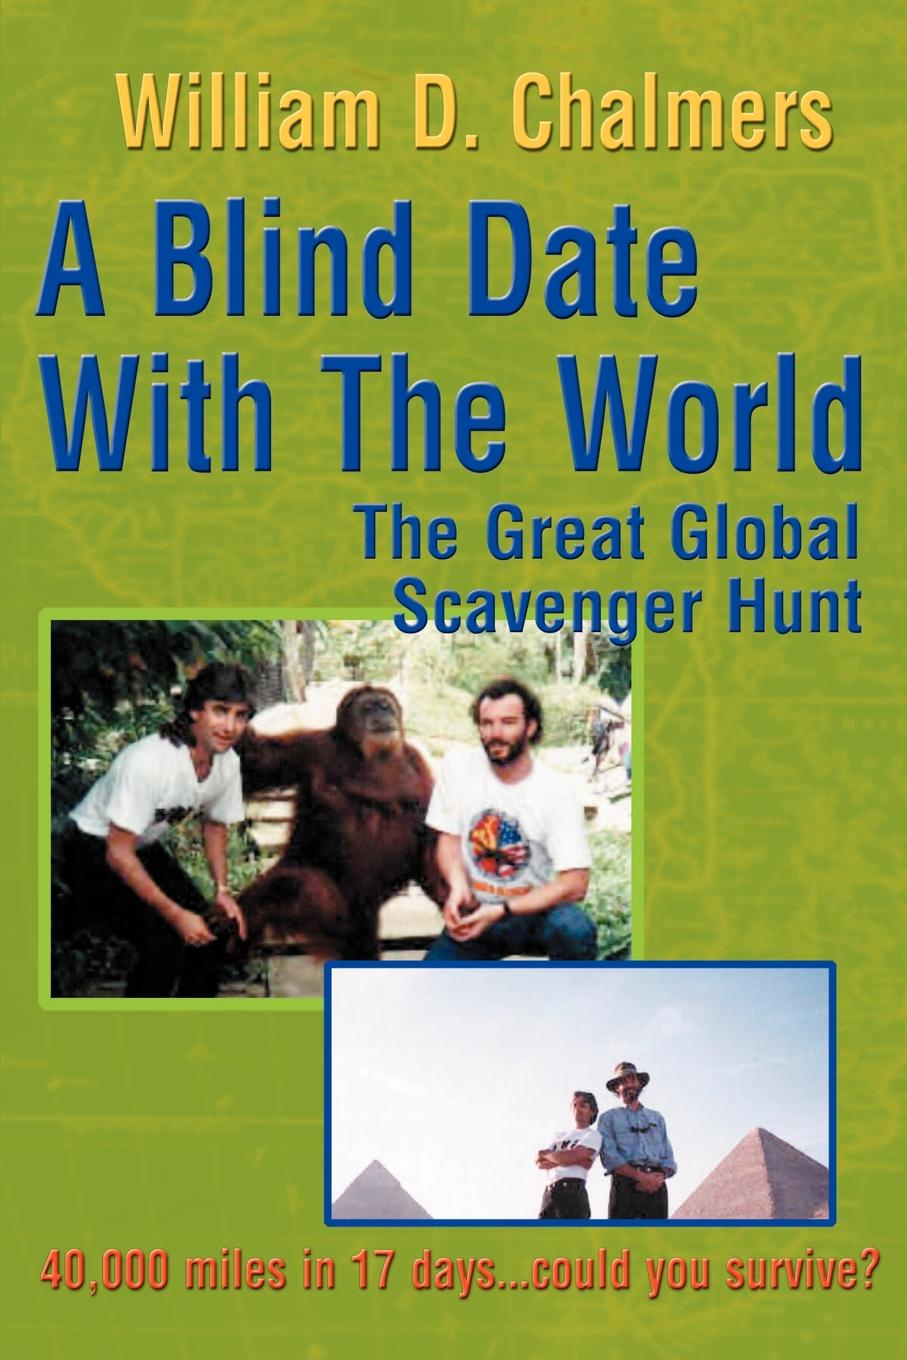 цена на William D. Chalmers A Blind Date with the World. The Great Global Scavenger Hunt